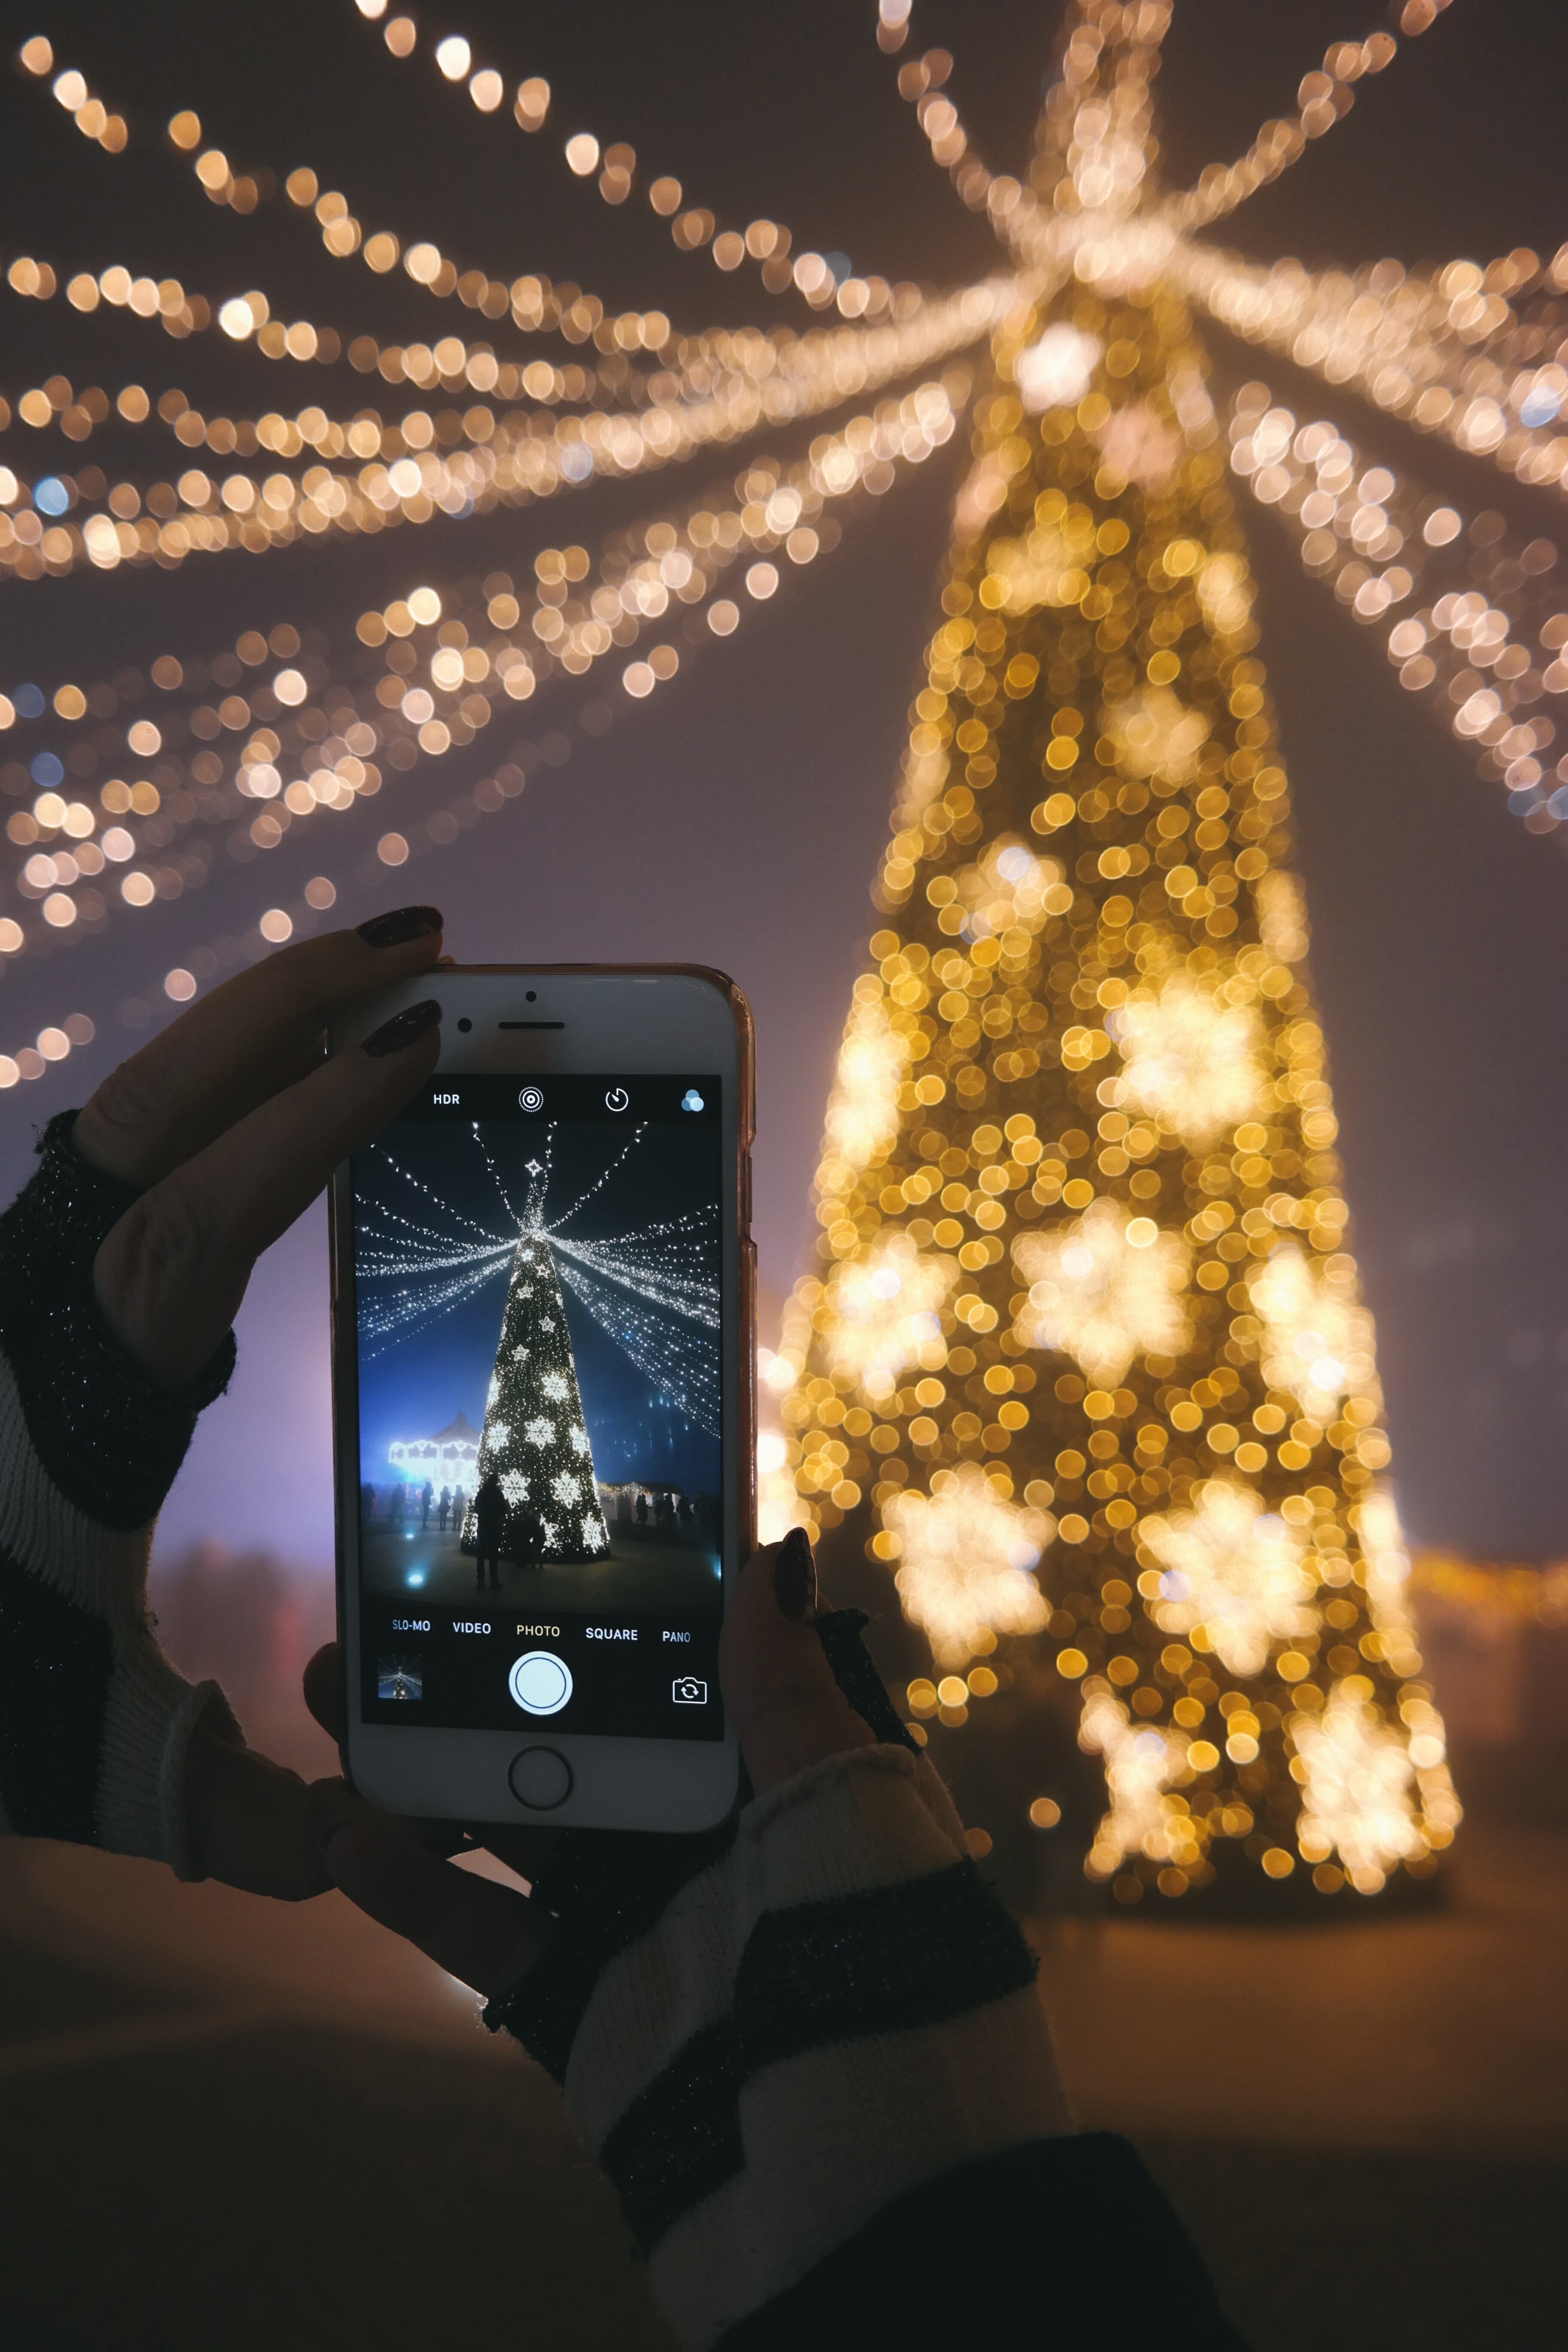 A person taking a picture of their Christmas tree with their smartphone.